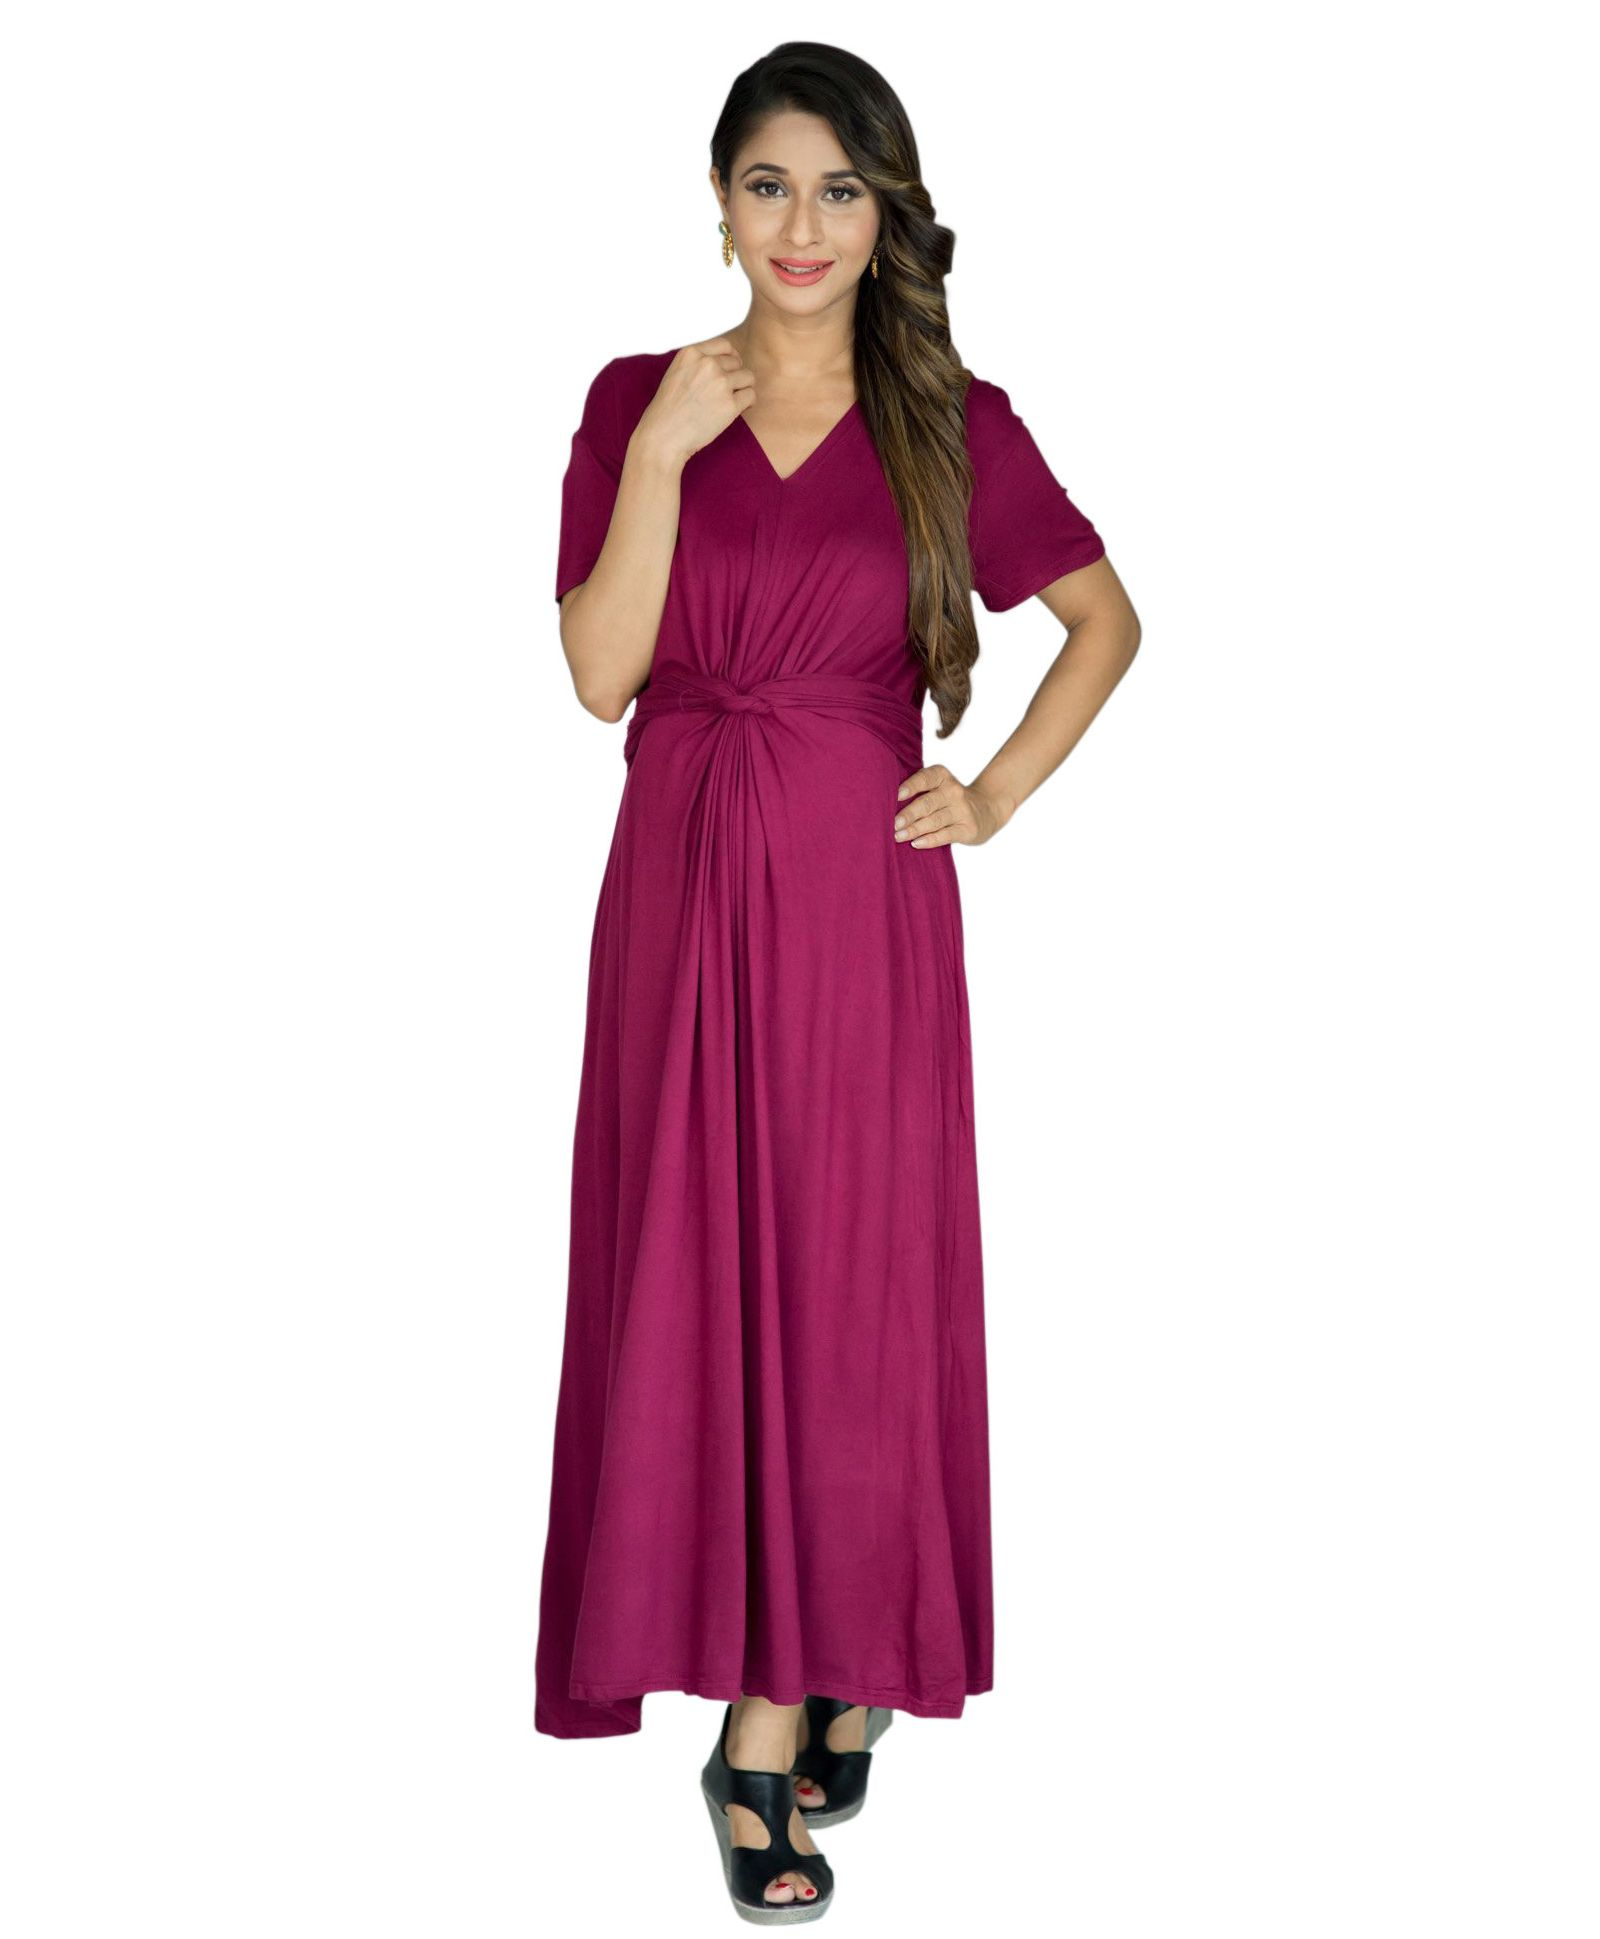 bc75bec62f MOMZJOY Berry Front Knot Lycra Maternity Dress Maroon Online in ...